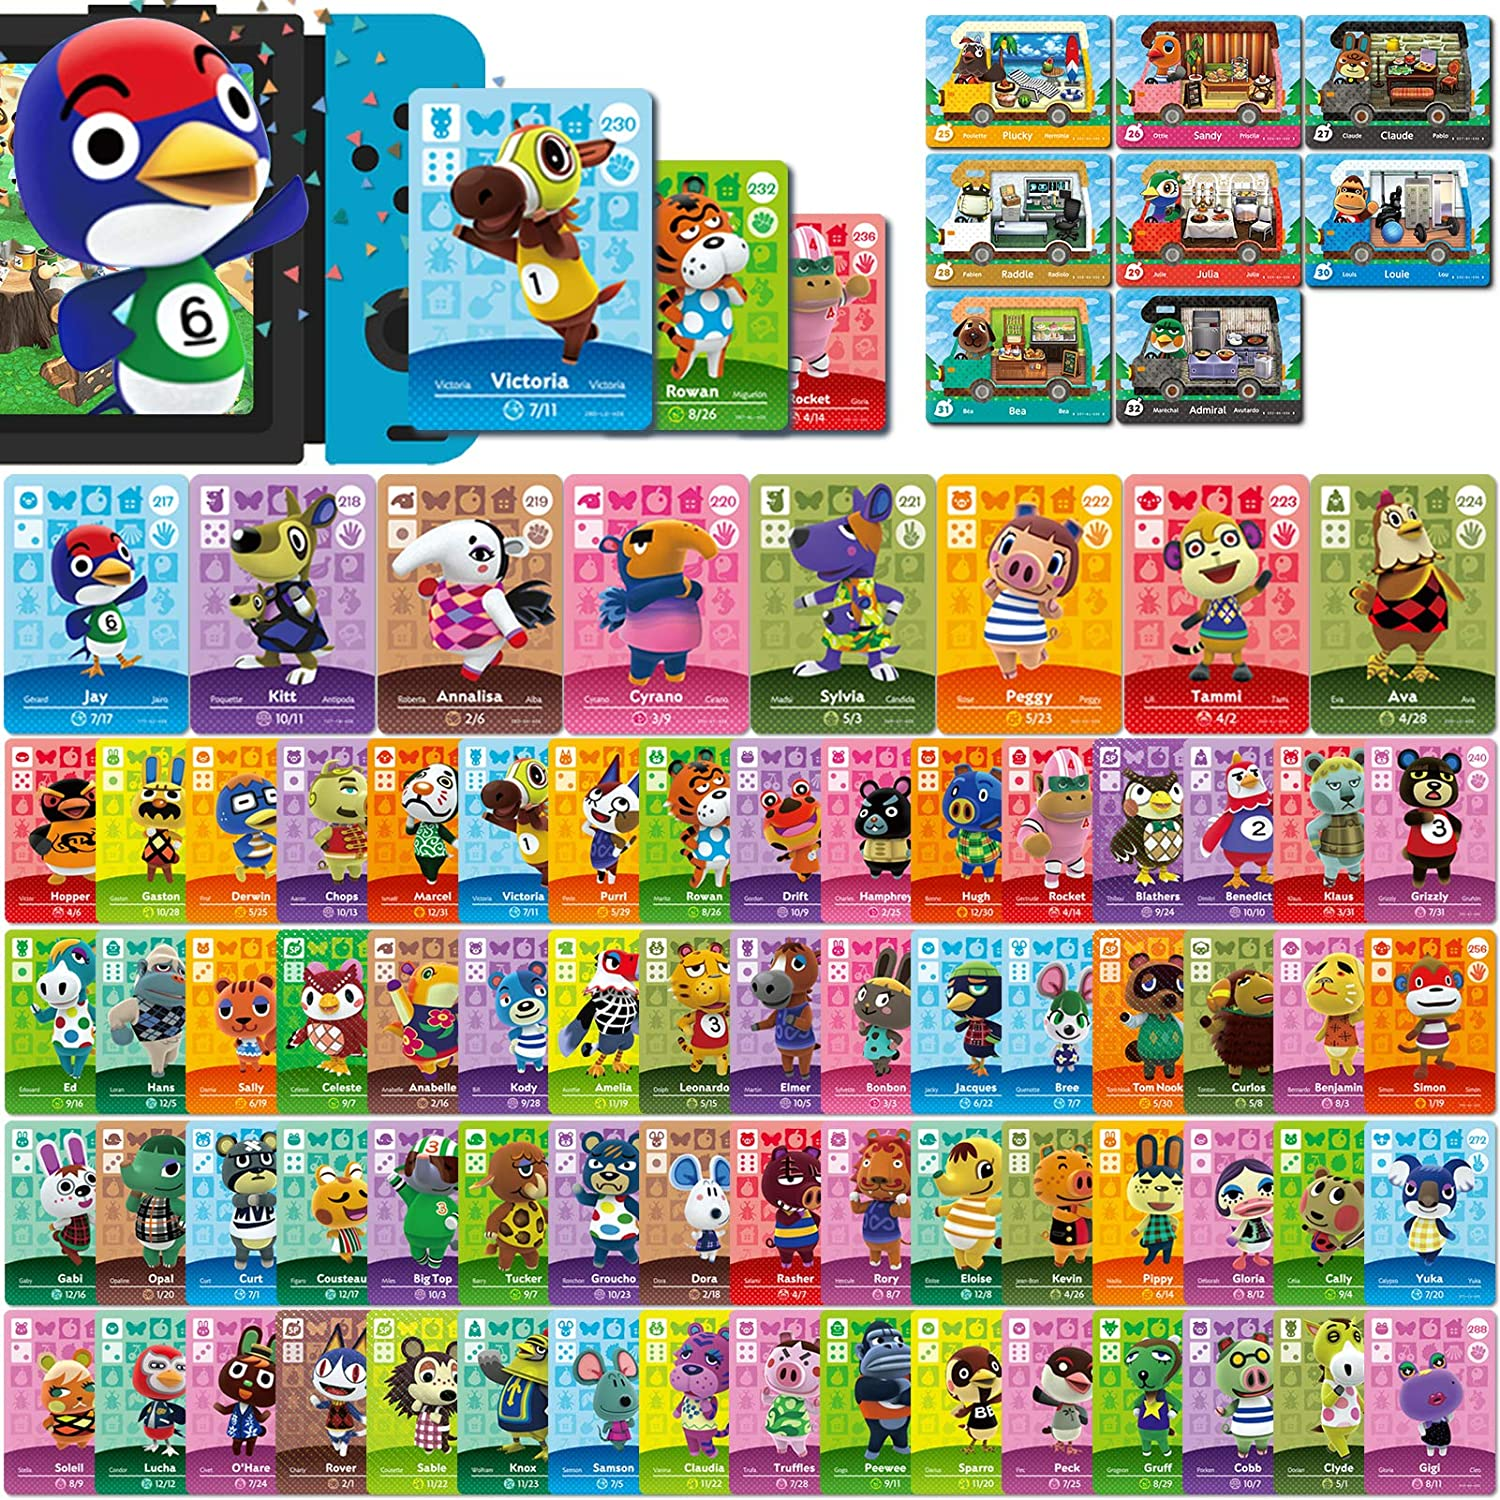 80 Pcs Mini NFC Cards Pack for Animal Crossing New Horizons Series 1,2,3,4 for Switch/Switch Lite/Wii U (Set L #217-288 + RV#25-32)